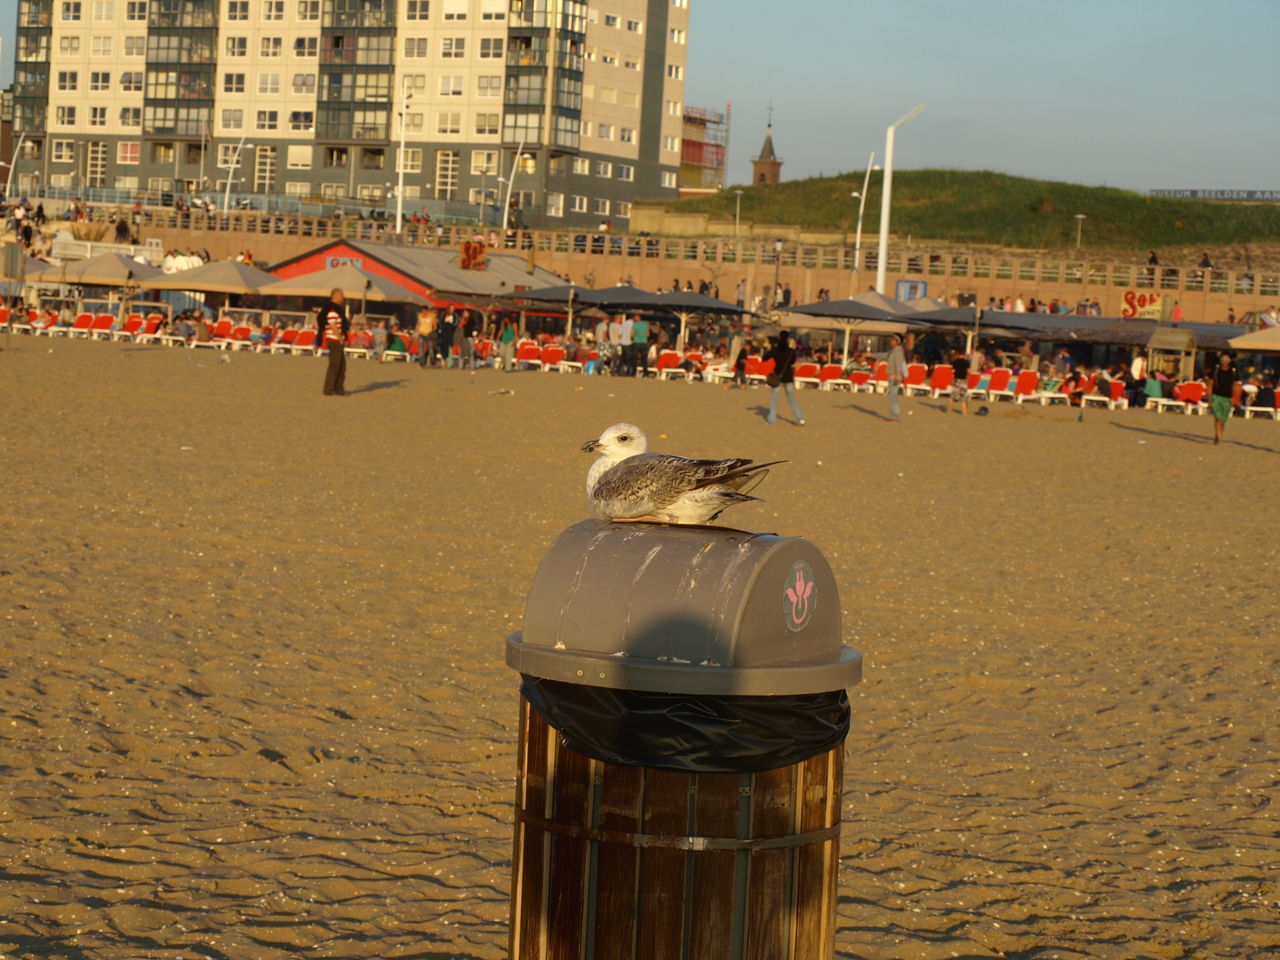 Architecture Beach Bird Building Exterior Built Structure City City Life Day Netherlands Outdoors Person Sand Scenics Scheveningen  Scheveningen Boulevard Scheveningen Pier Scheveningen Promenade Scheveningenbeach Sea Shore Summer Togetherness Tranquility Vacations Water